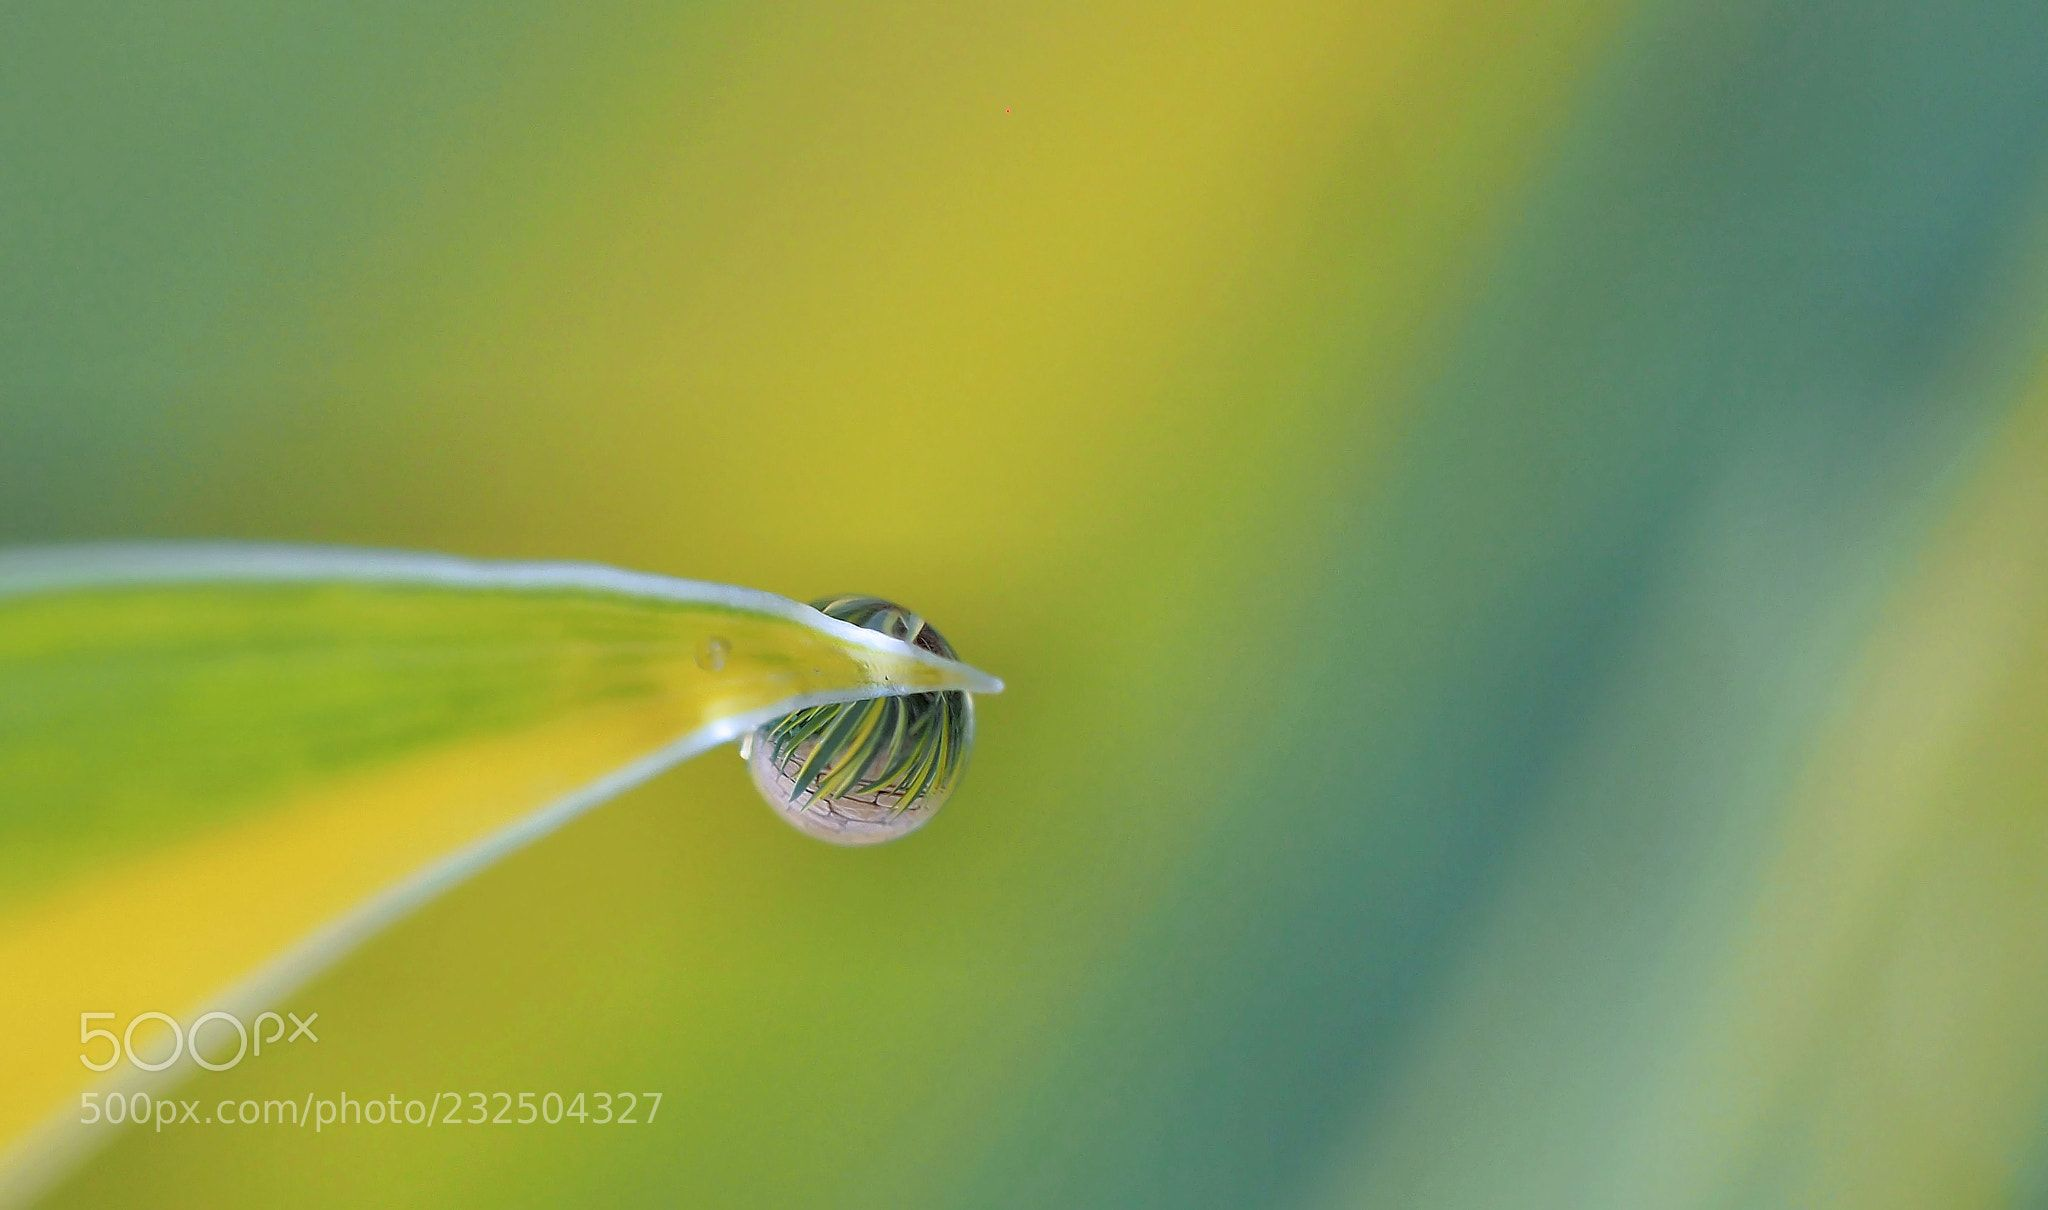 Delicate pearl of dew... (Thierry Dufour / Aubenas / France) #E-M5 #macro #photo #insect #nature